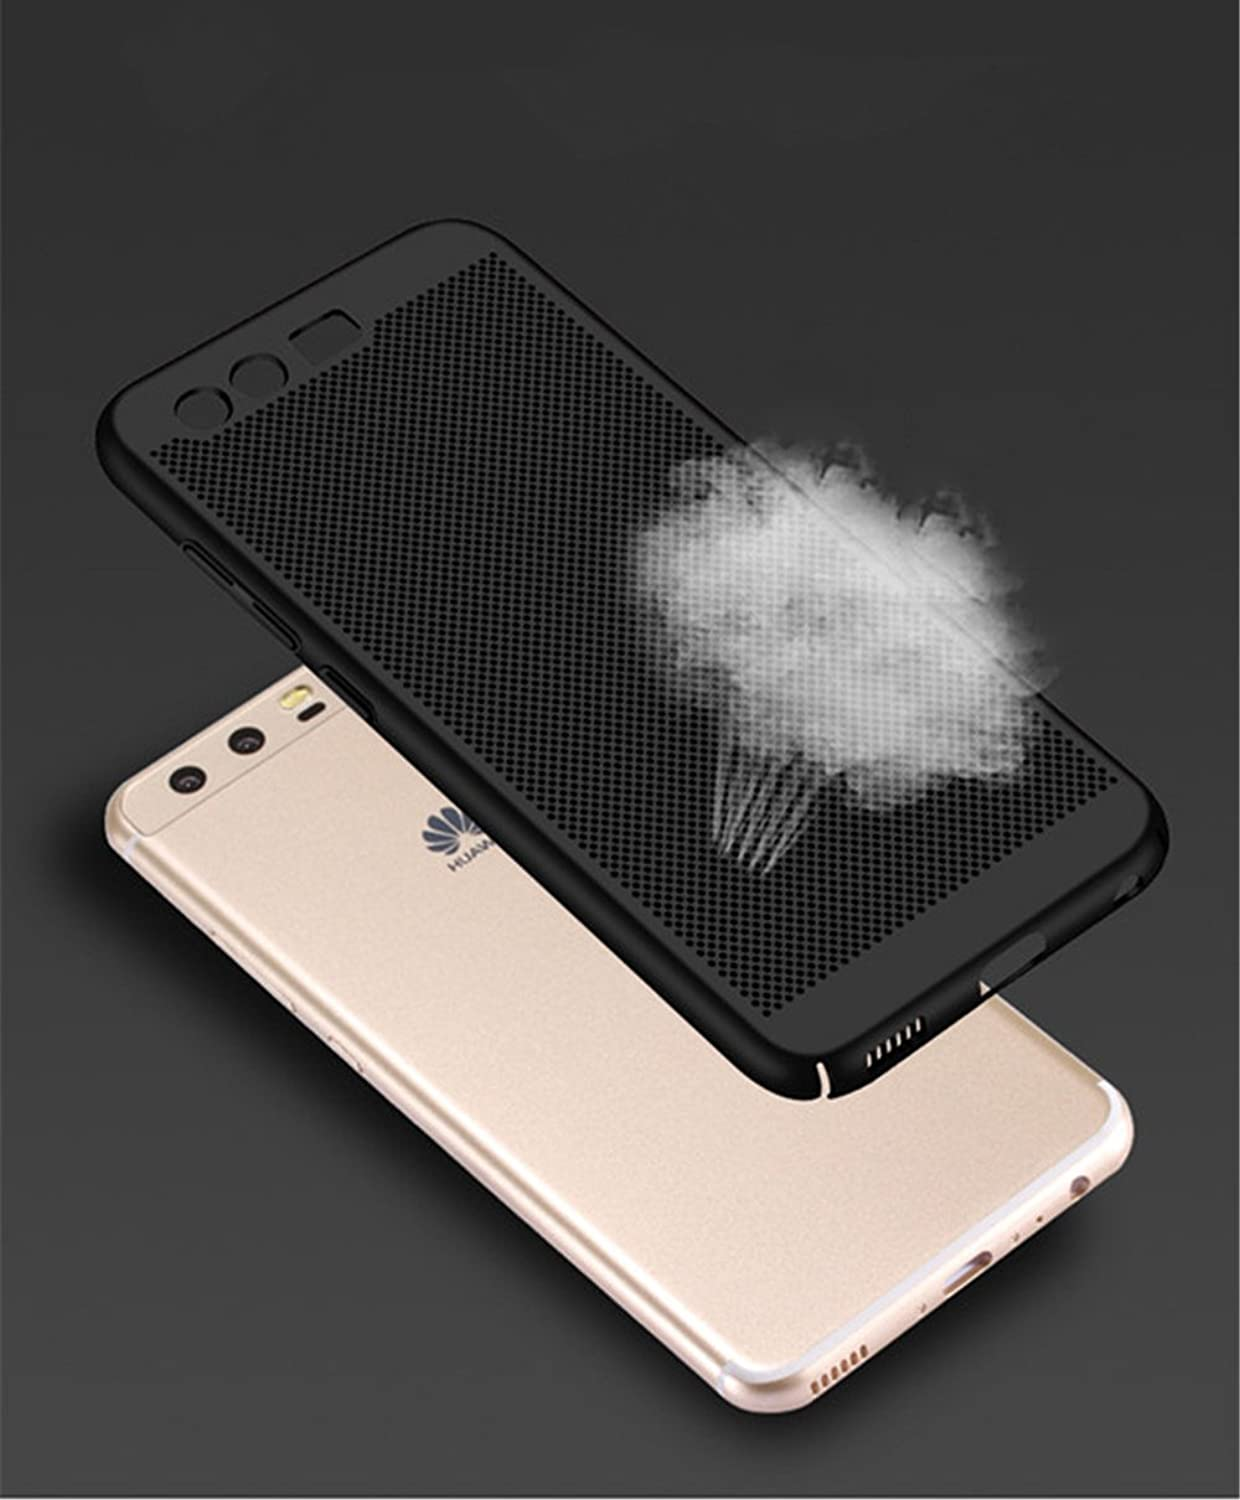 Amazon.com: Huawei P10 / P10 Plus Case, Cooki Ultra Thin Mesh Design Heat Dissipation Cover: Clothing